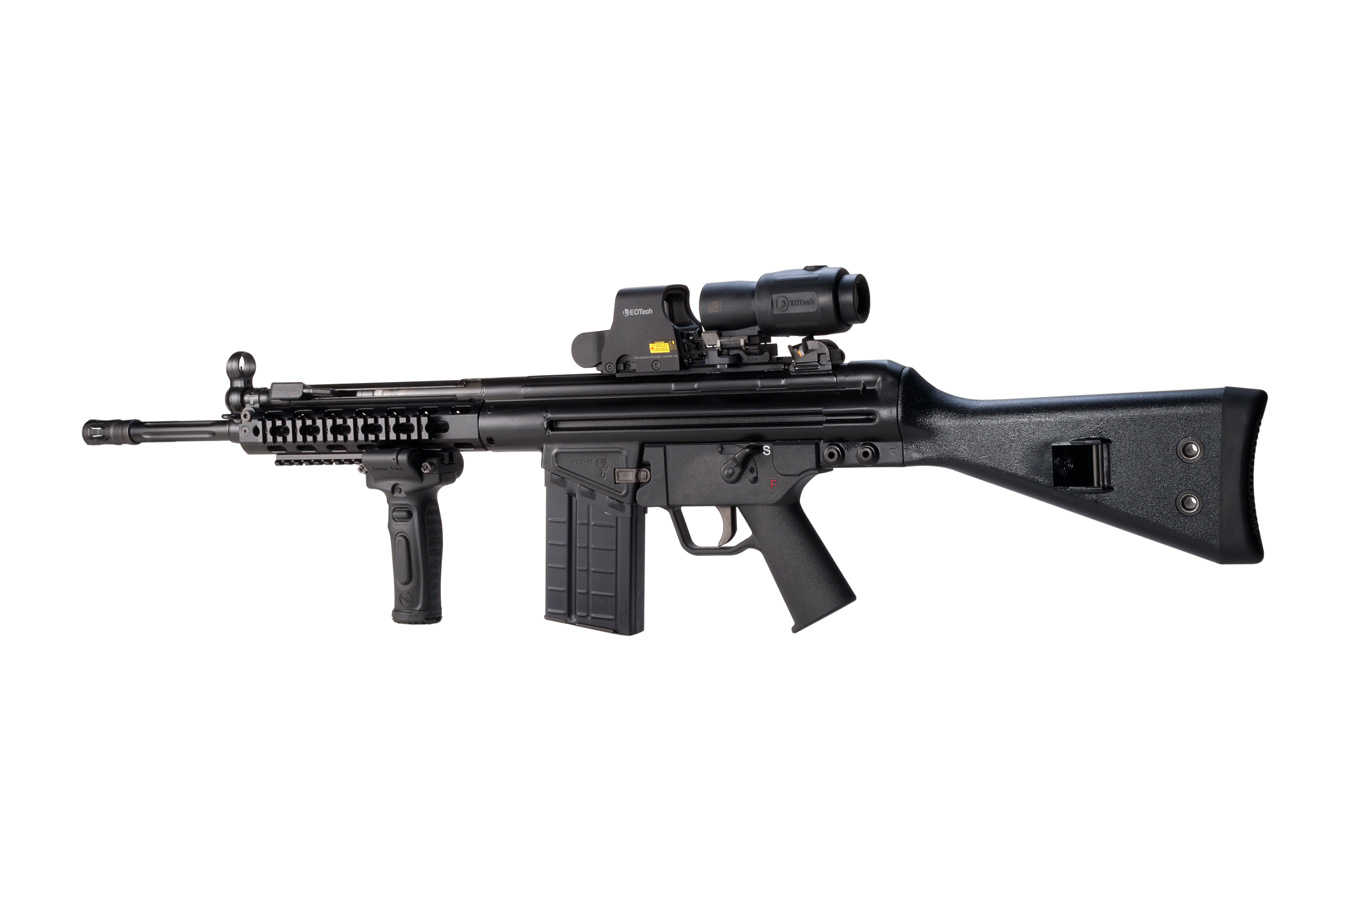 semi automatic rifle with EOTech scope and magnifer